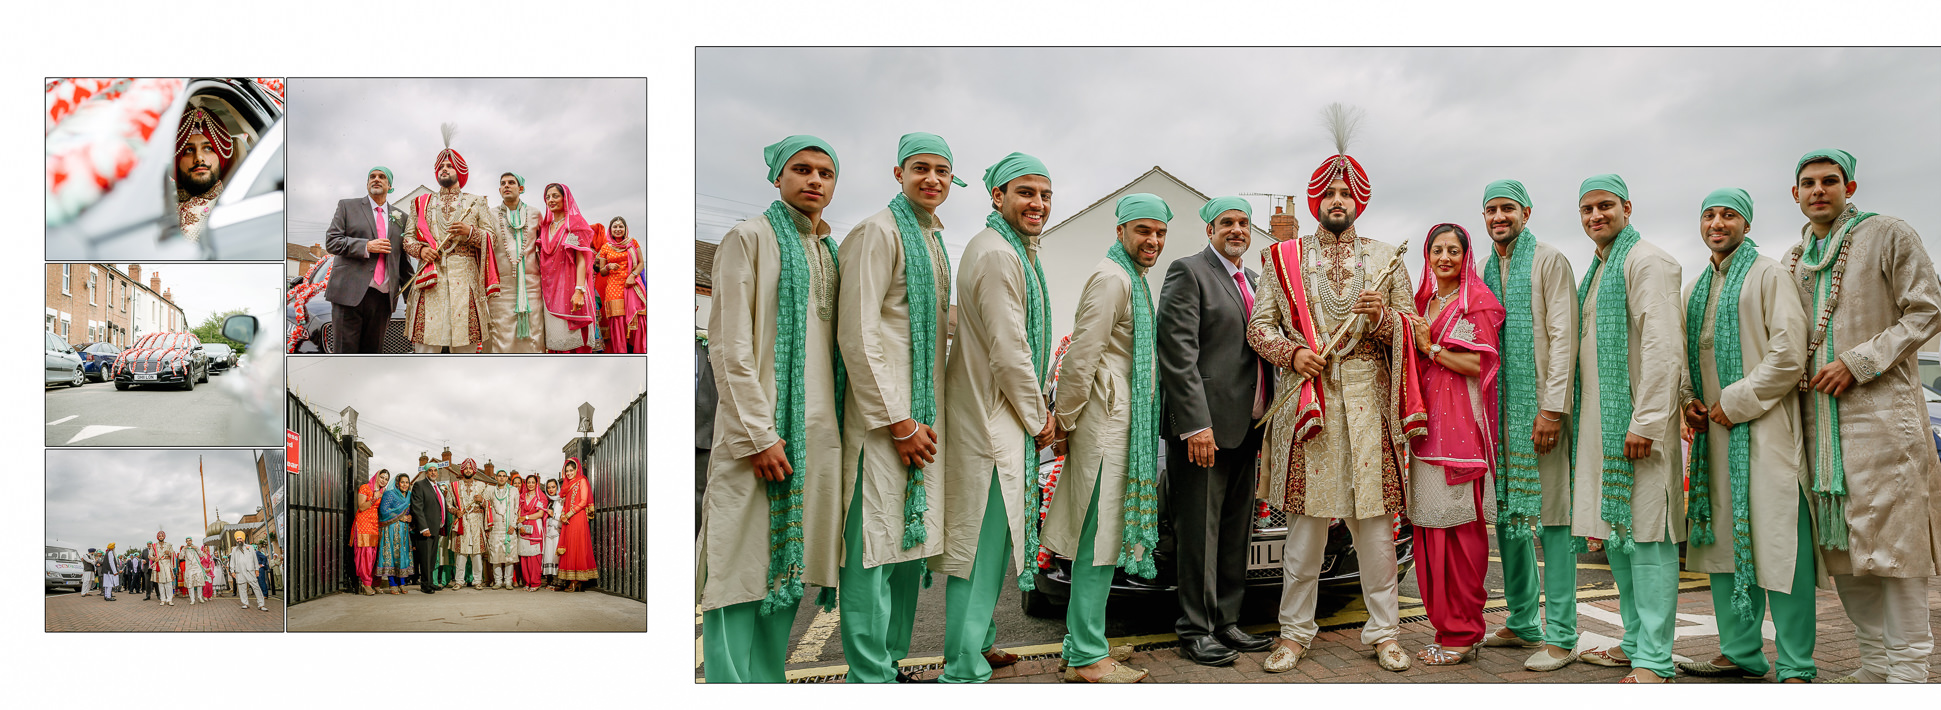 indian-wedding-photographer-sikh-17-of-43